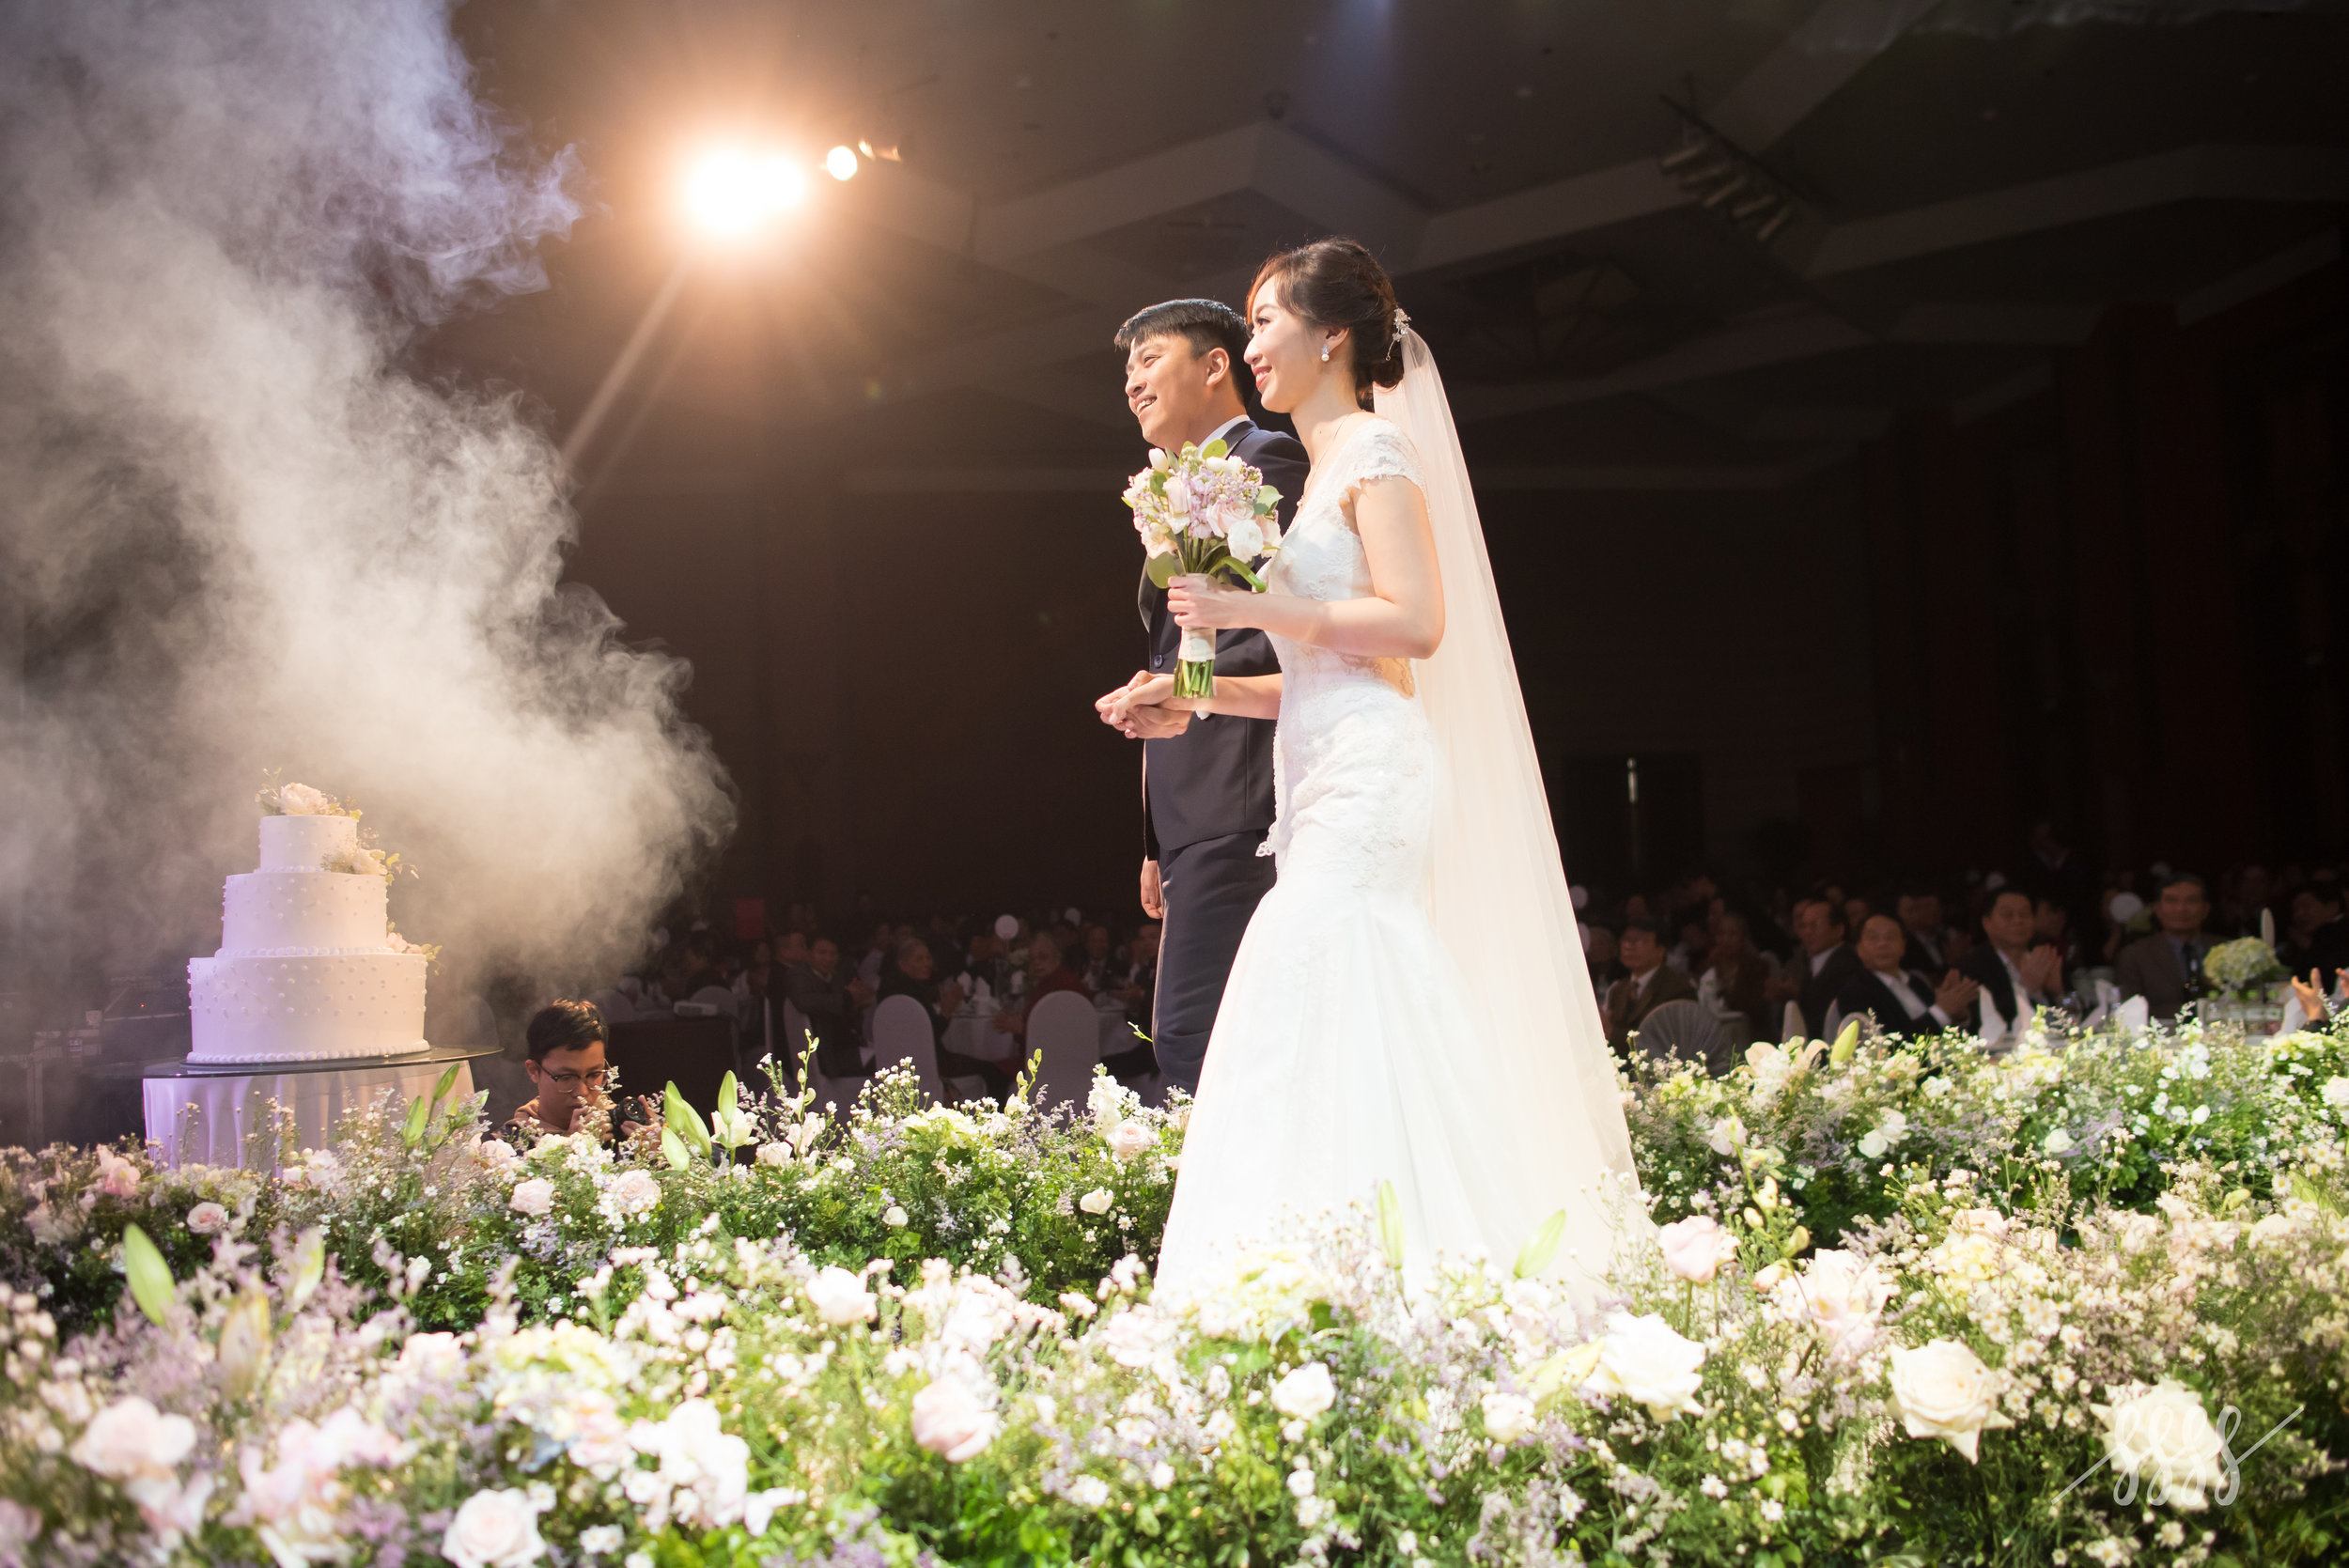 EARLY WINTER DELIGHT - My & Minh wedding in the heart of Hanoi